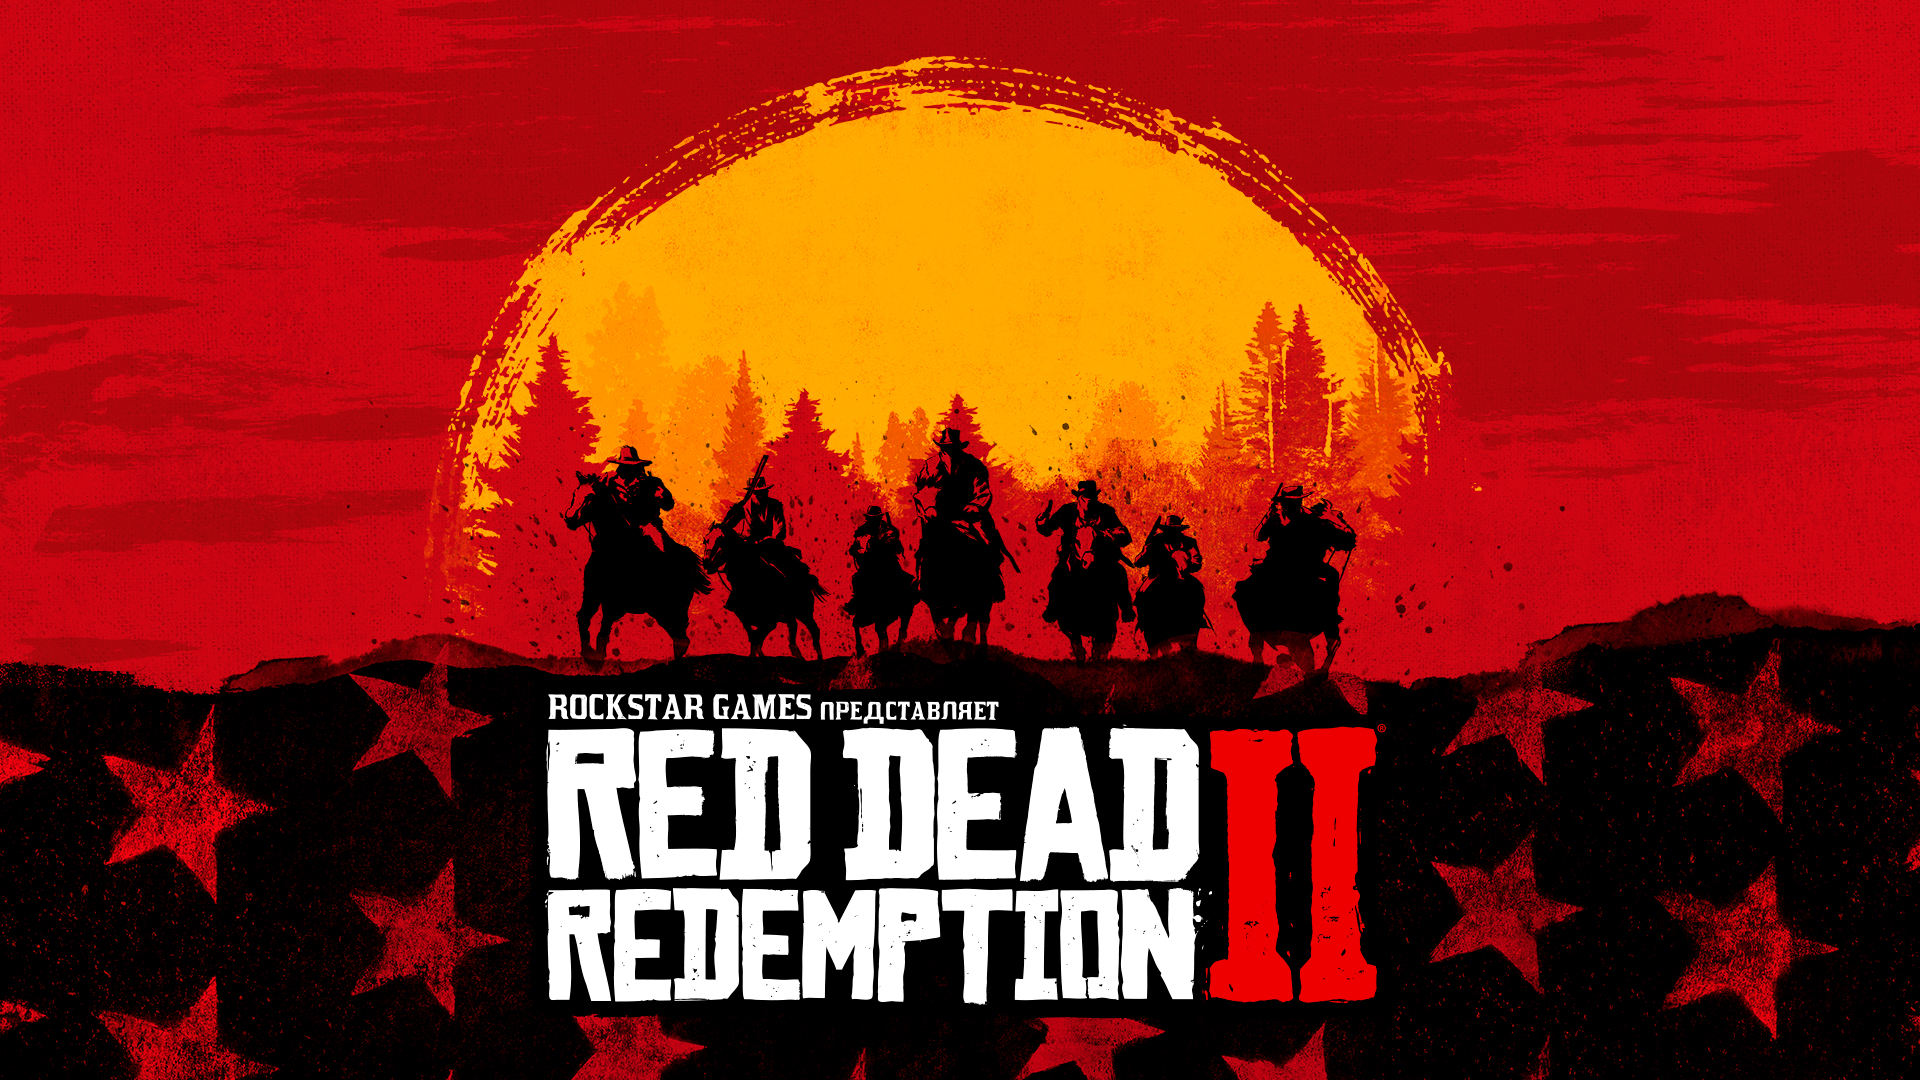 128180647f2926a361ef6ee01a4687b96544590d.jpg - Red Dead Redemption 2